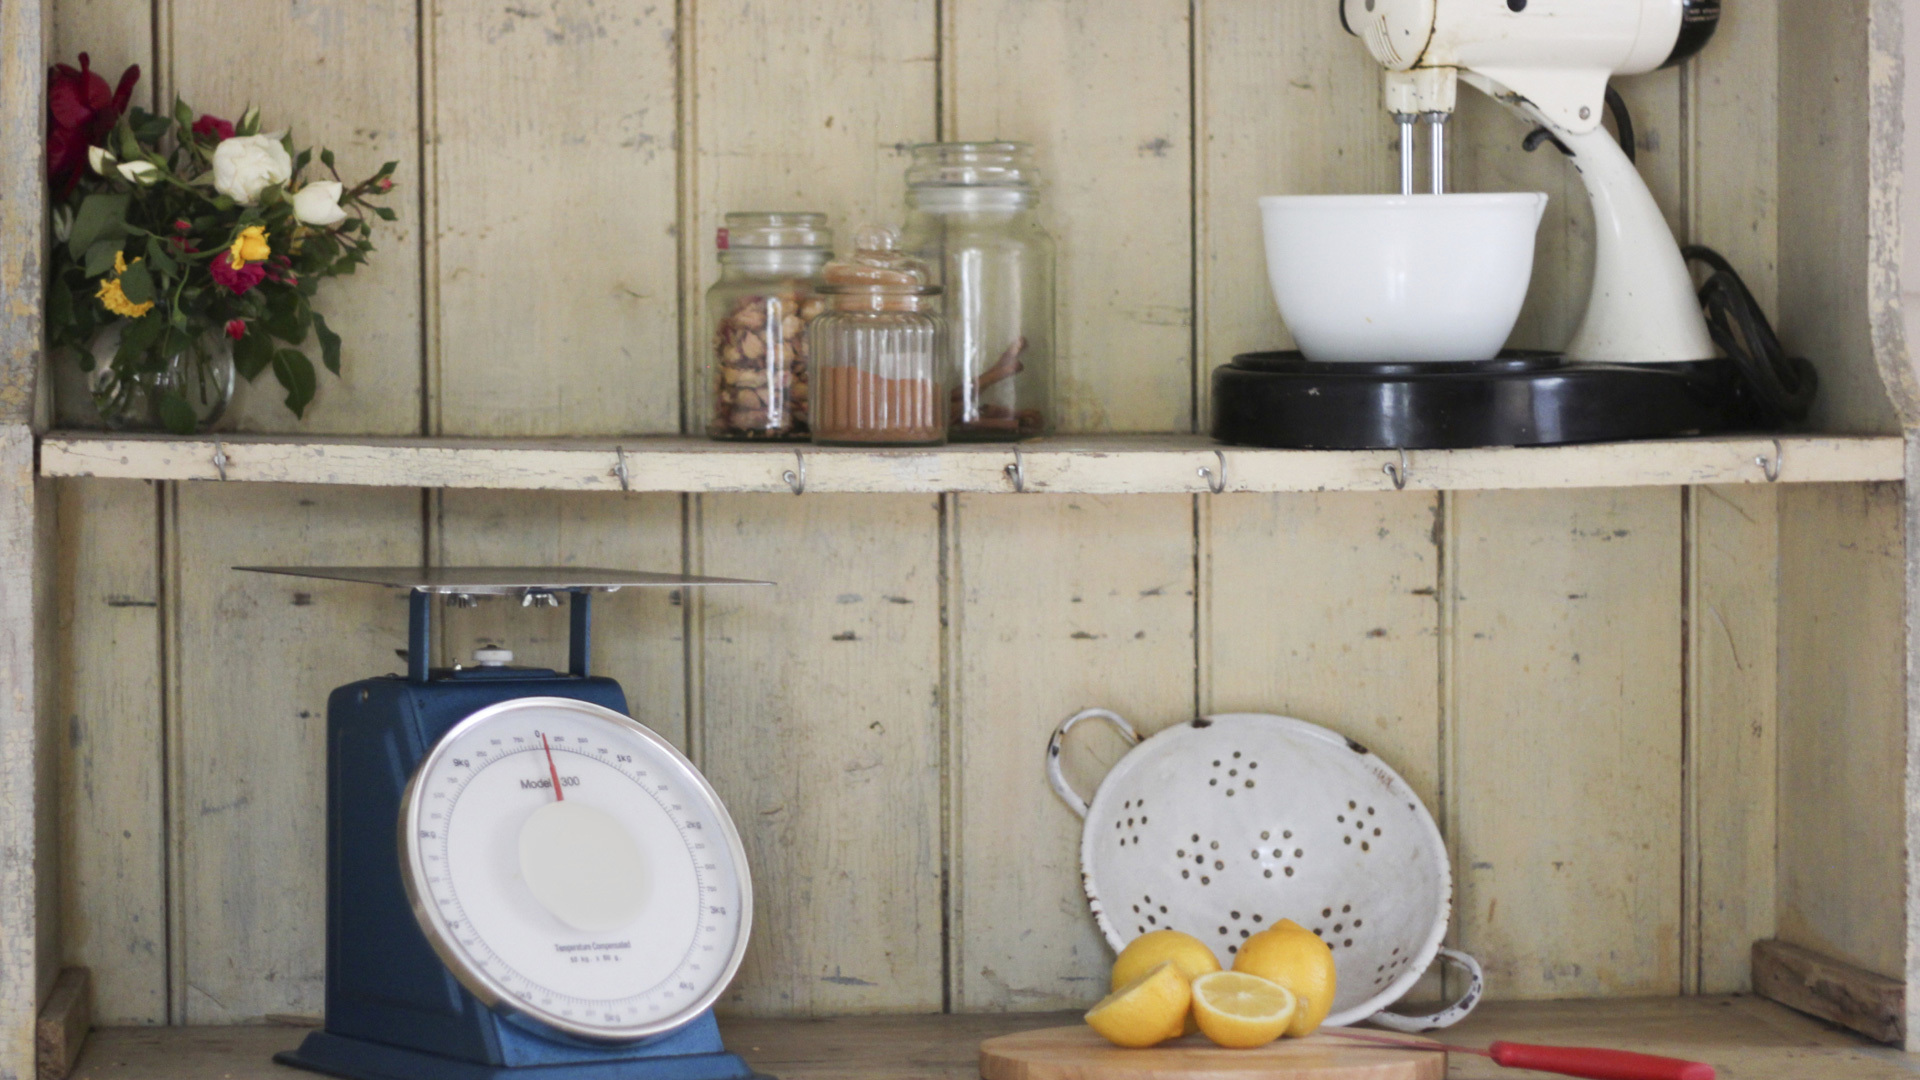 Easy ways to add farmhouse charm to your kitchen when you're